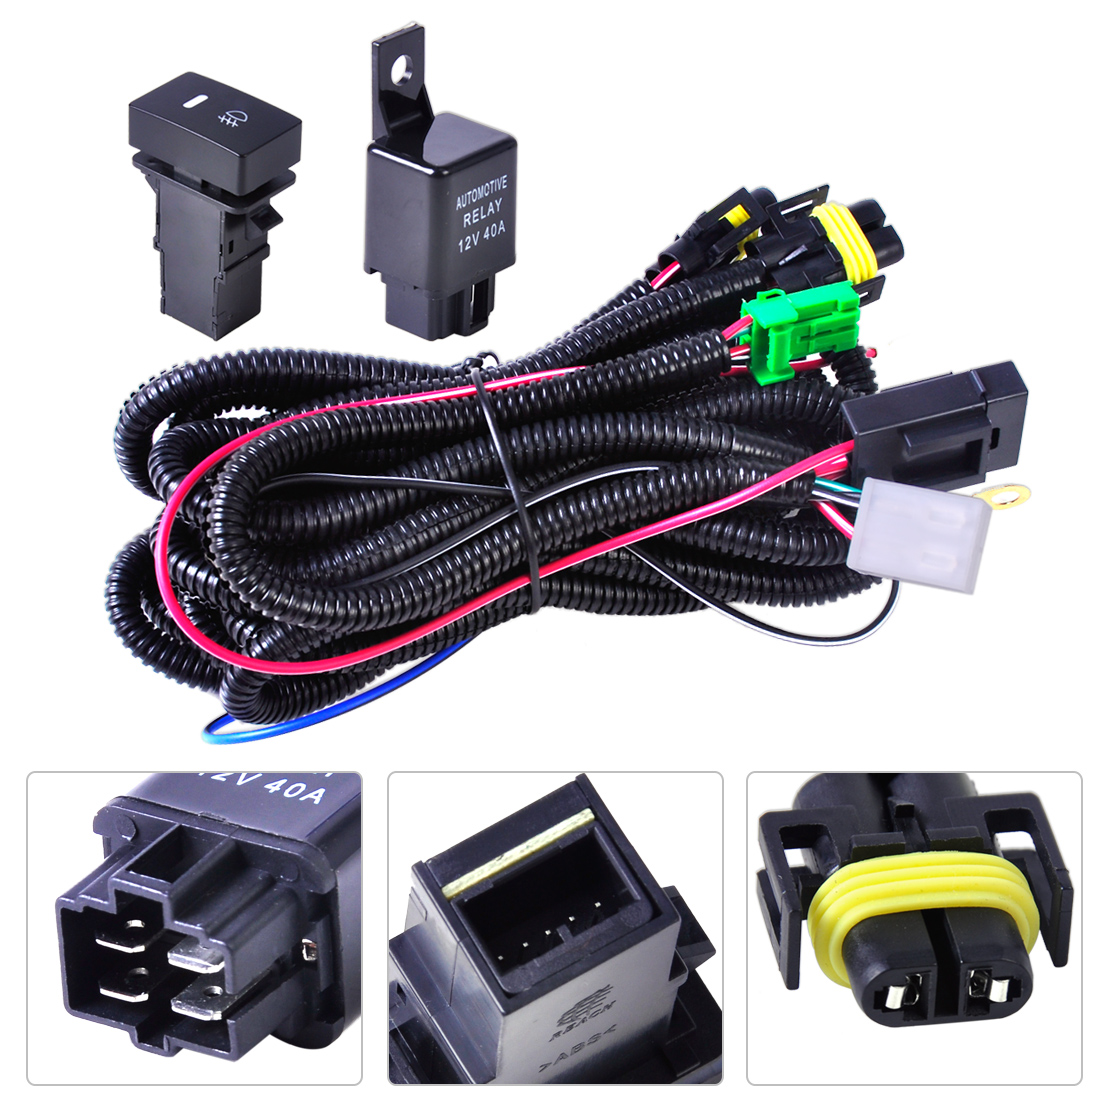 Wiring Harness Sockets Switch For H11 Fog Light Lamp Ford Focus Acura Nissan 728360607010 Ebay